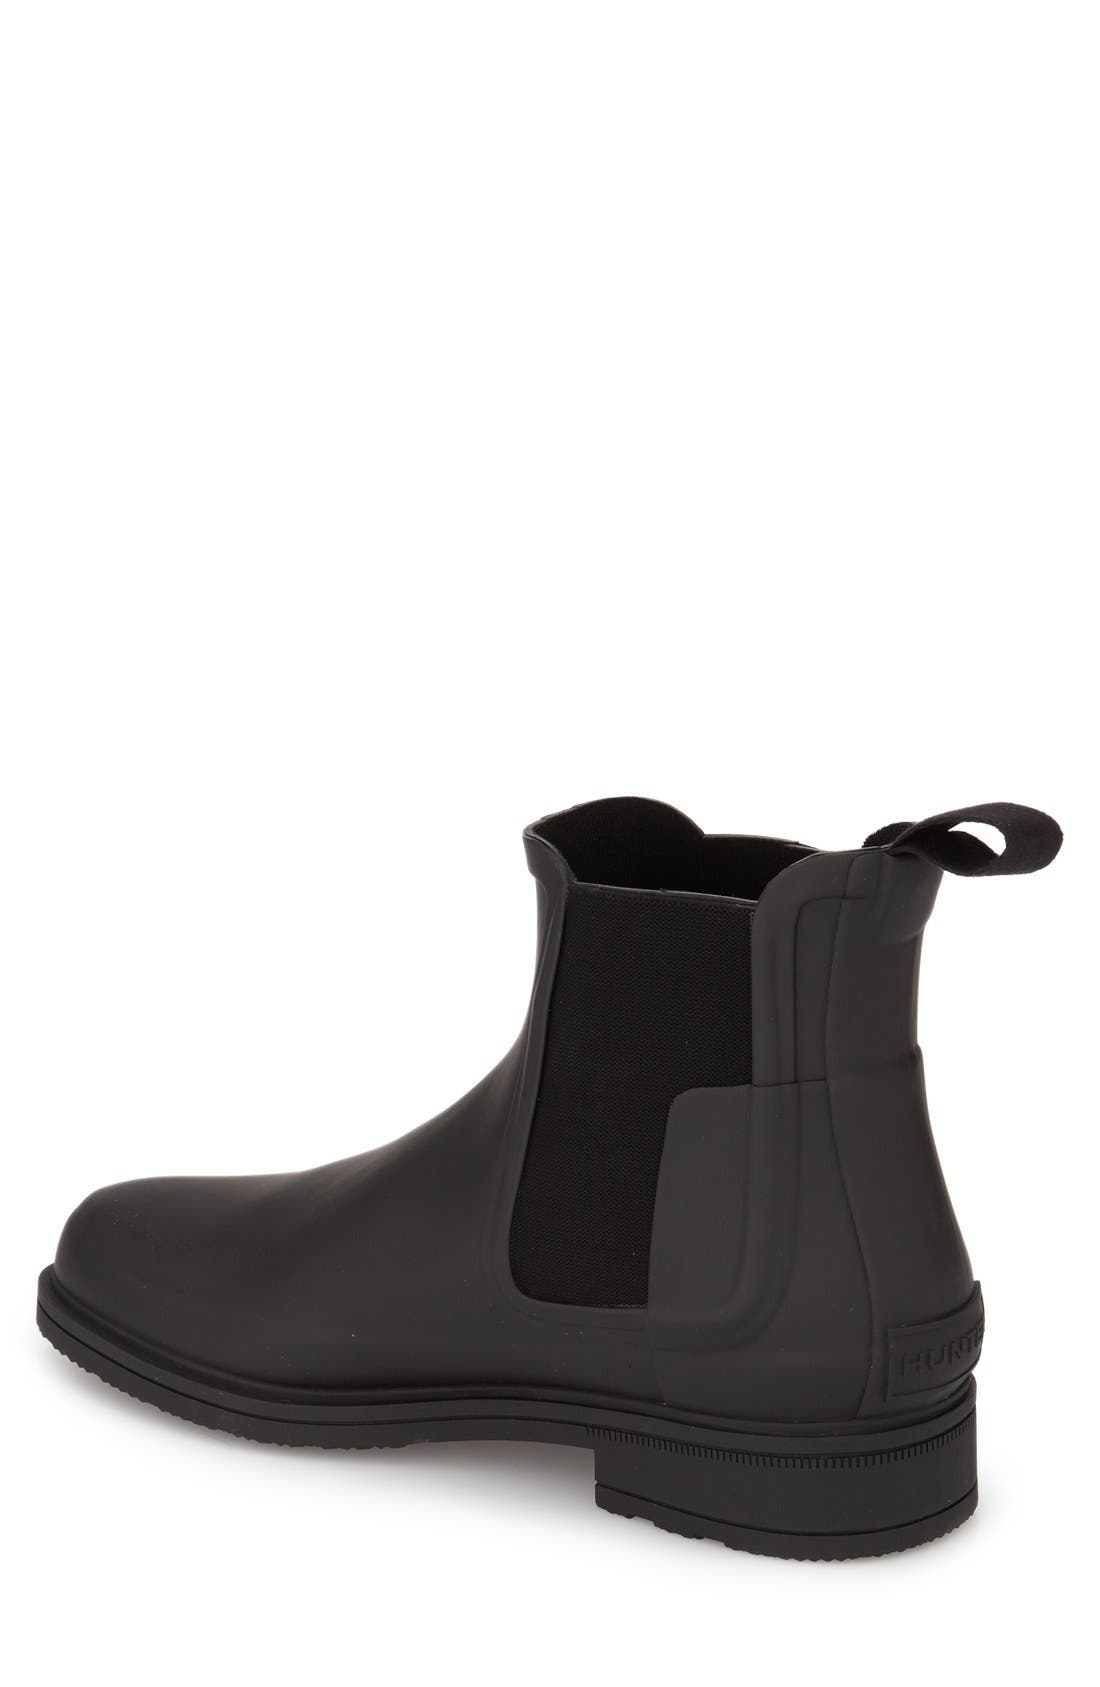 Alternate Image 2  - Hunter Original Refined Waterproof Chelsea Boot (Men)